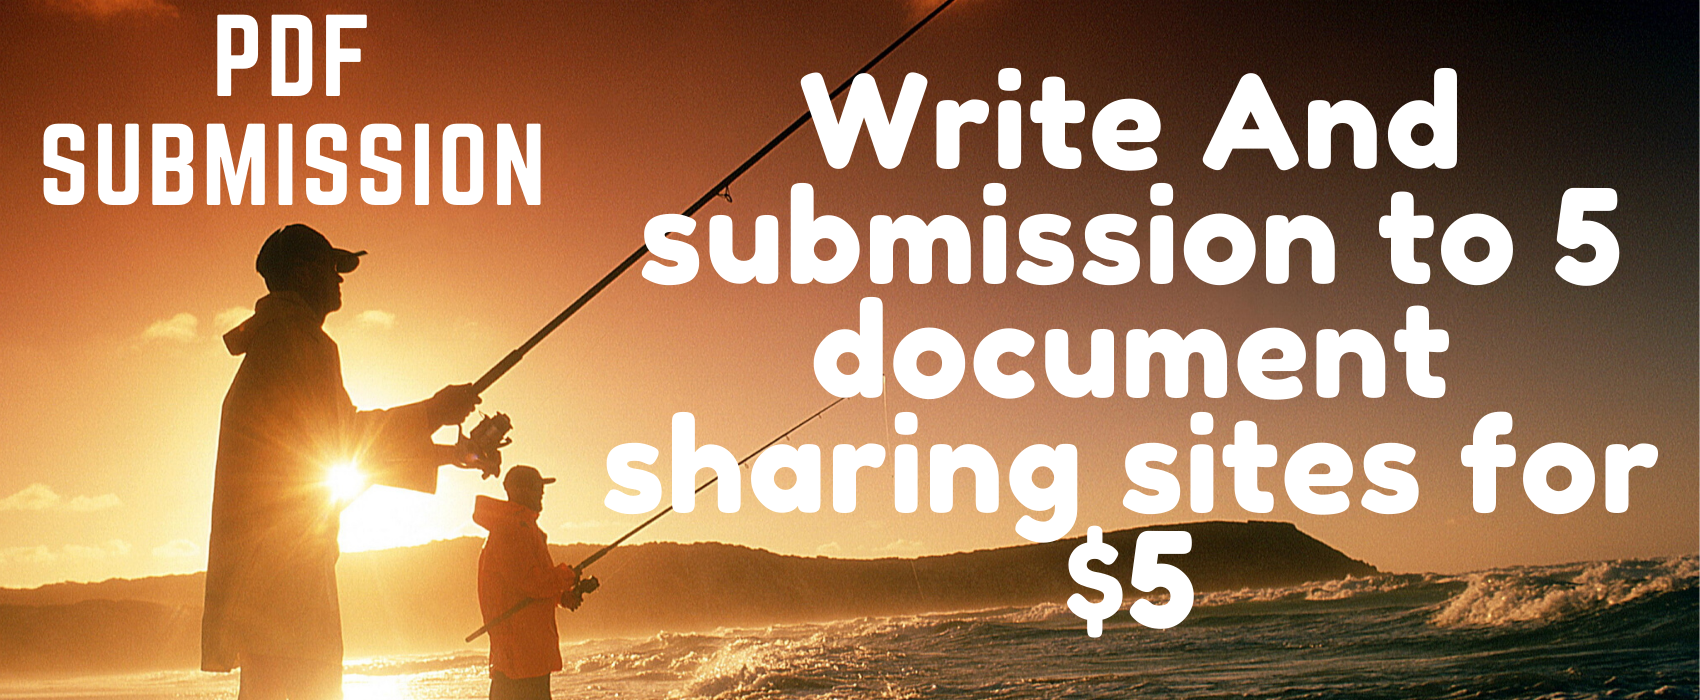 Write And submission to 5 document sharing sites